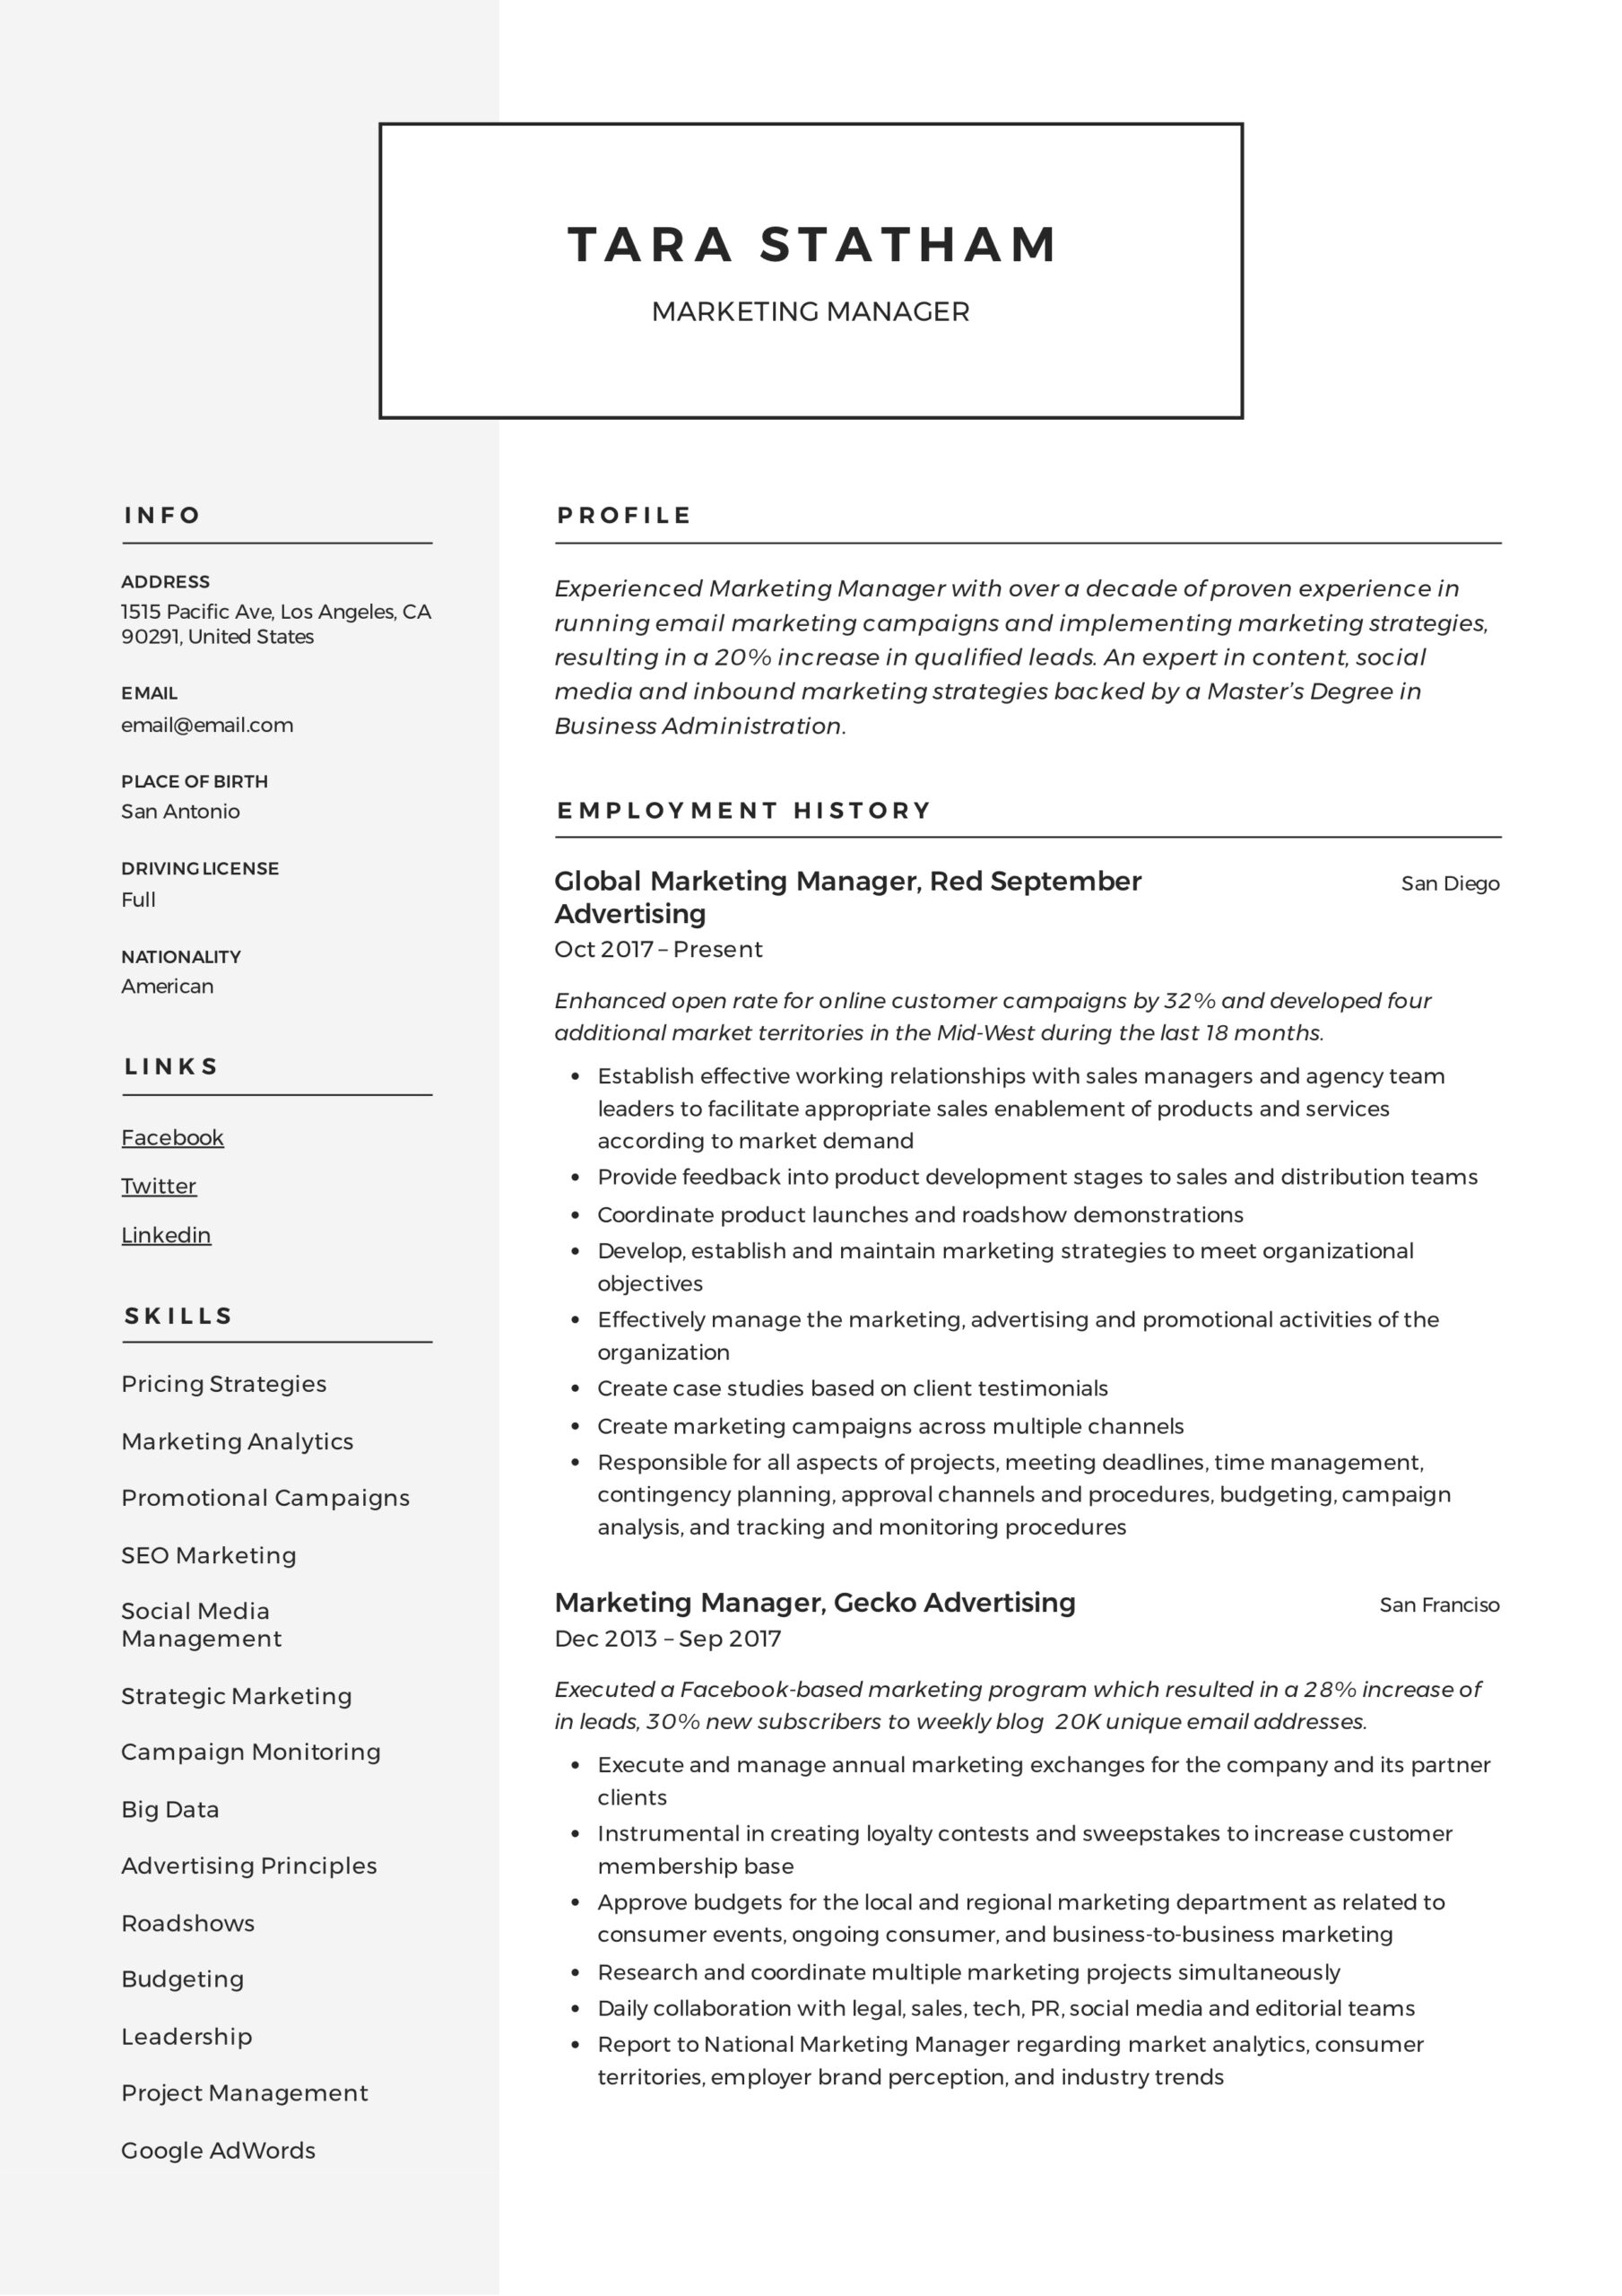 marketing manager resume writing guide templates description for tara statham excellent Resume Marketing Manager Description For Resume